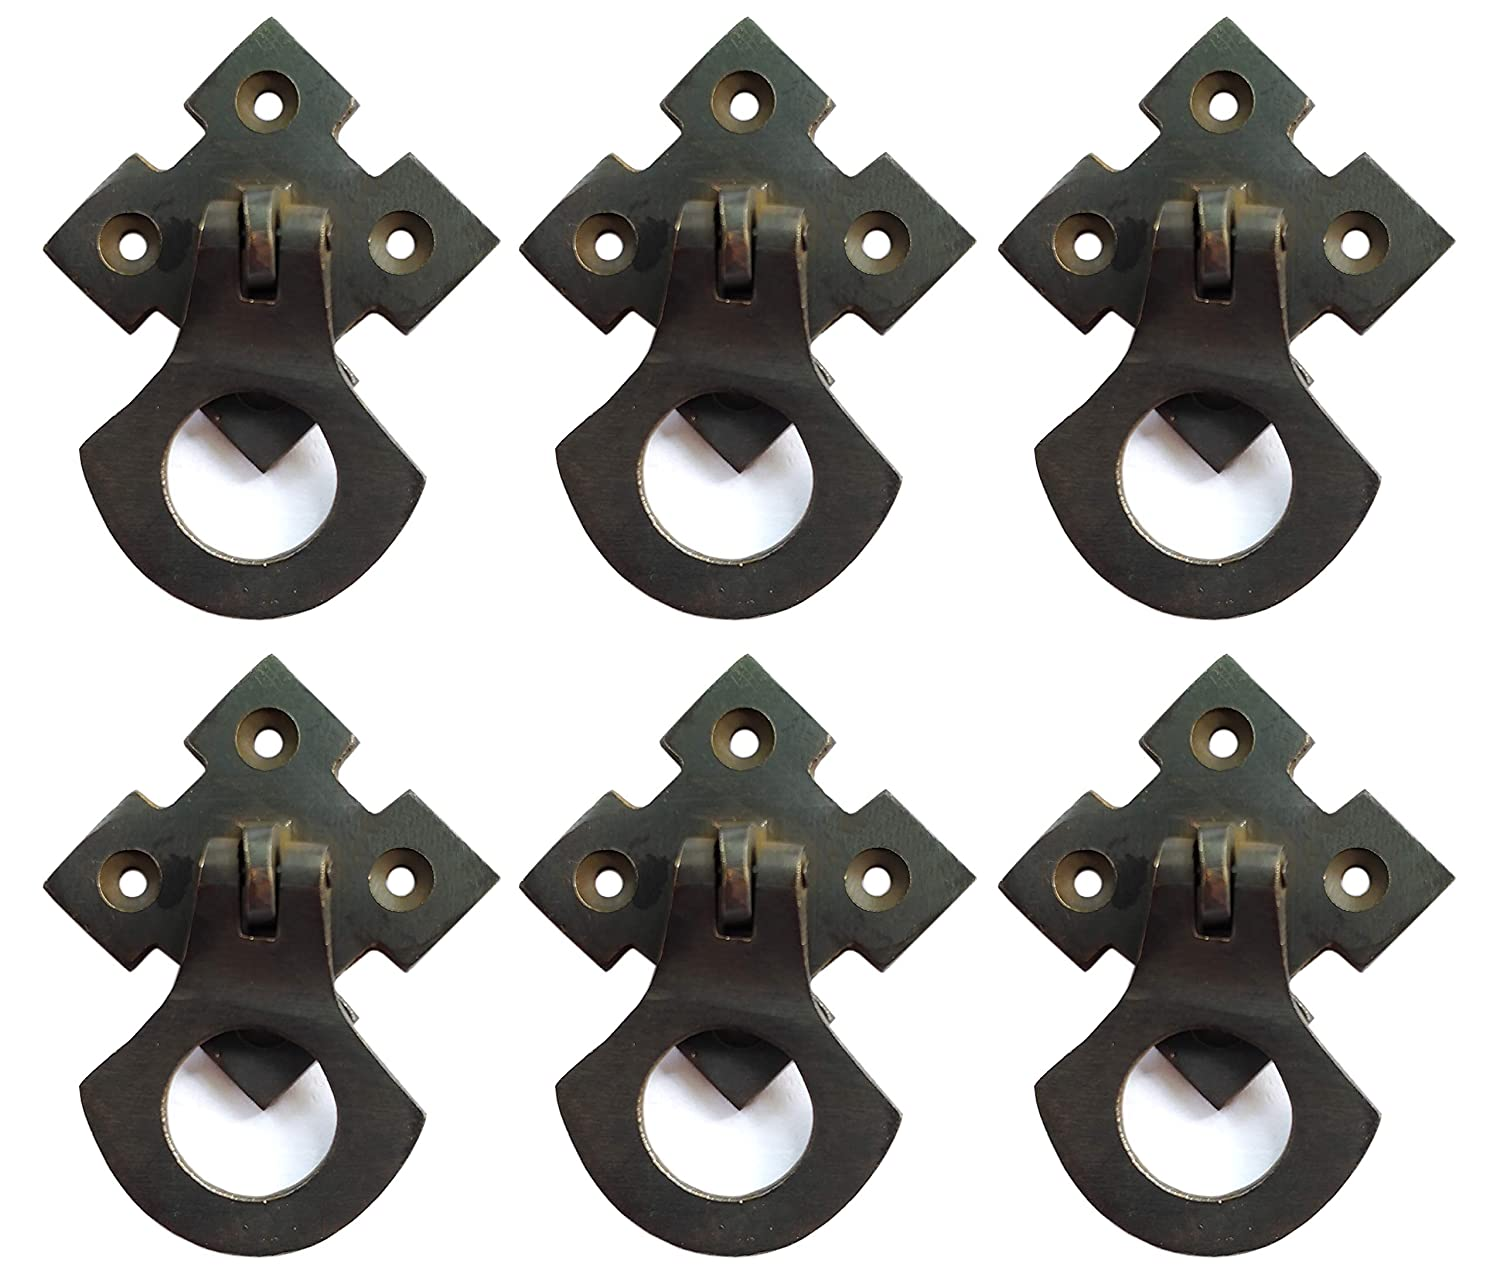 Nesha Design Components Arts and Crafts Mission Style Ring Pulls Hardware Oil Rubbed Bronze (6 Pack)